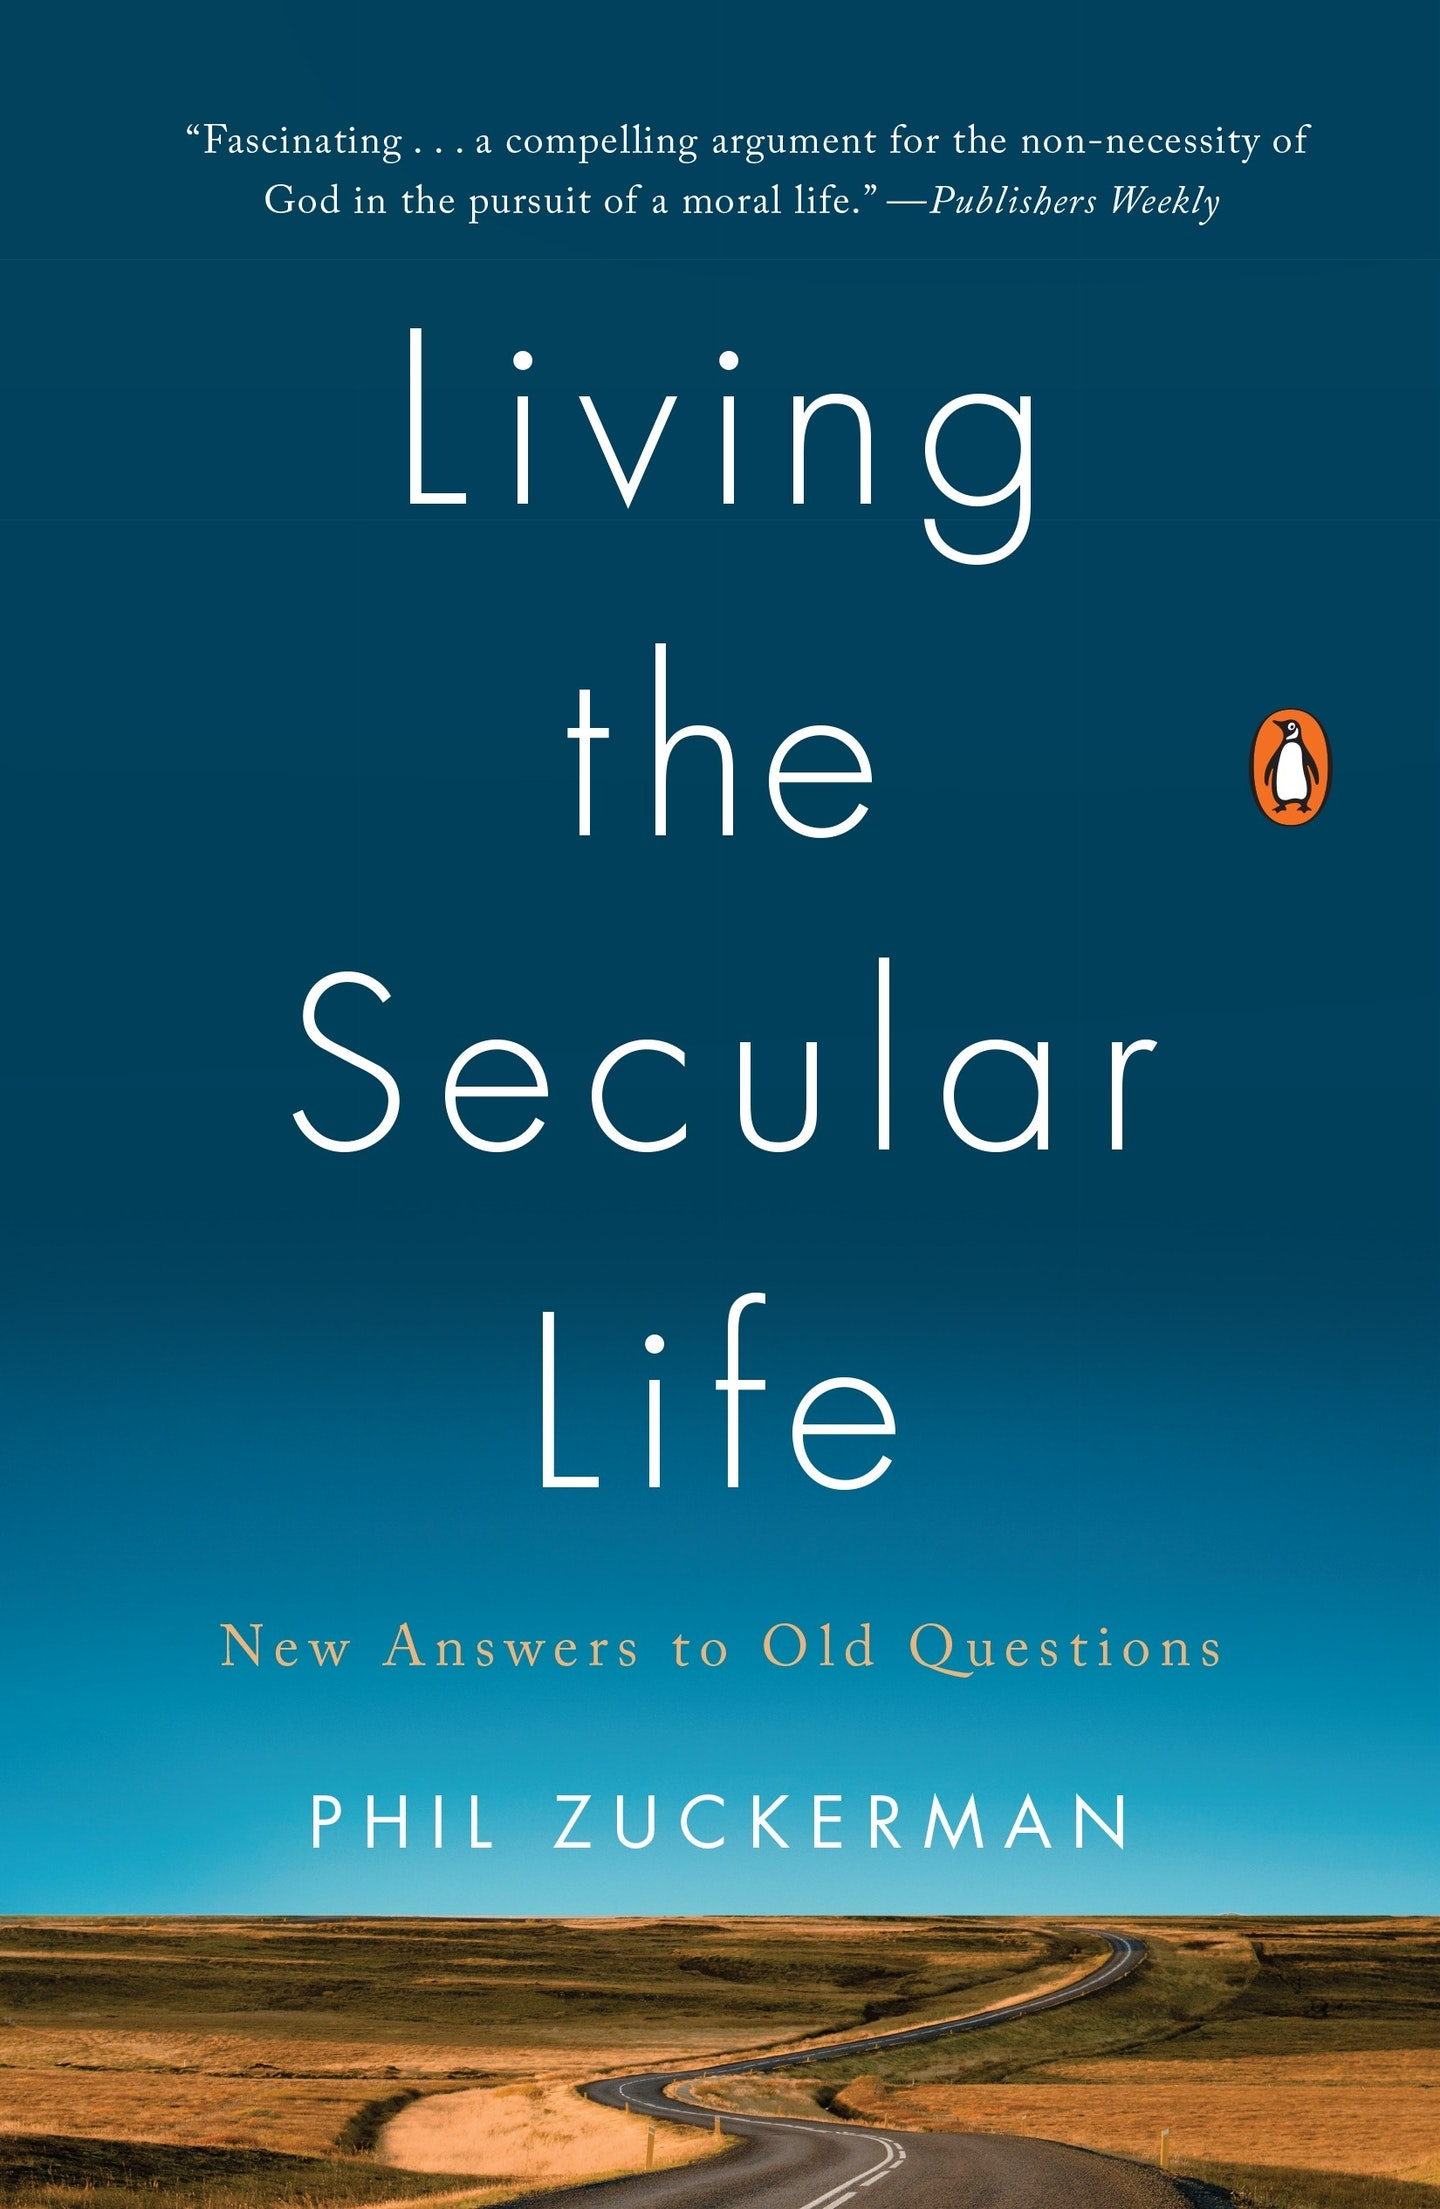 the religious and secular image question The religious and secular image question essay1 secular art in europe can be put into three overarching categories: still life, landscape, and genre painting.